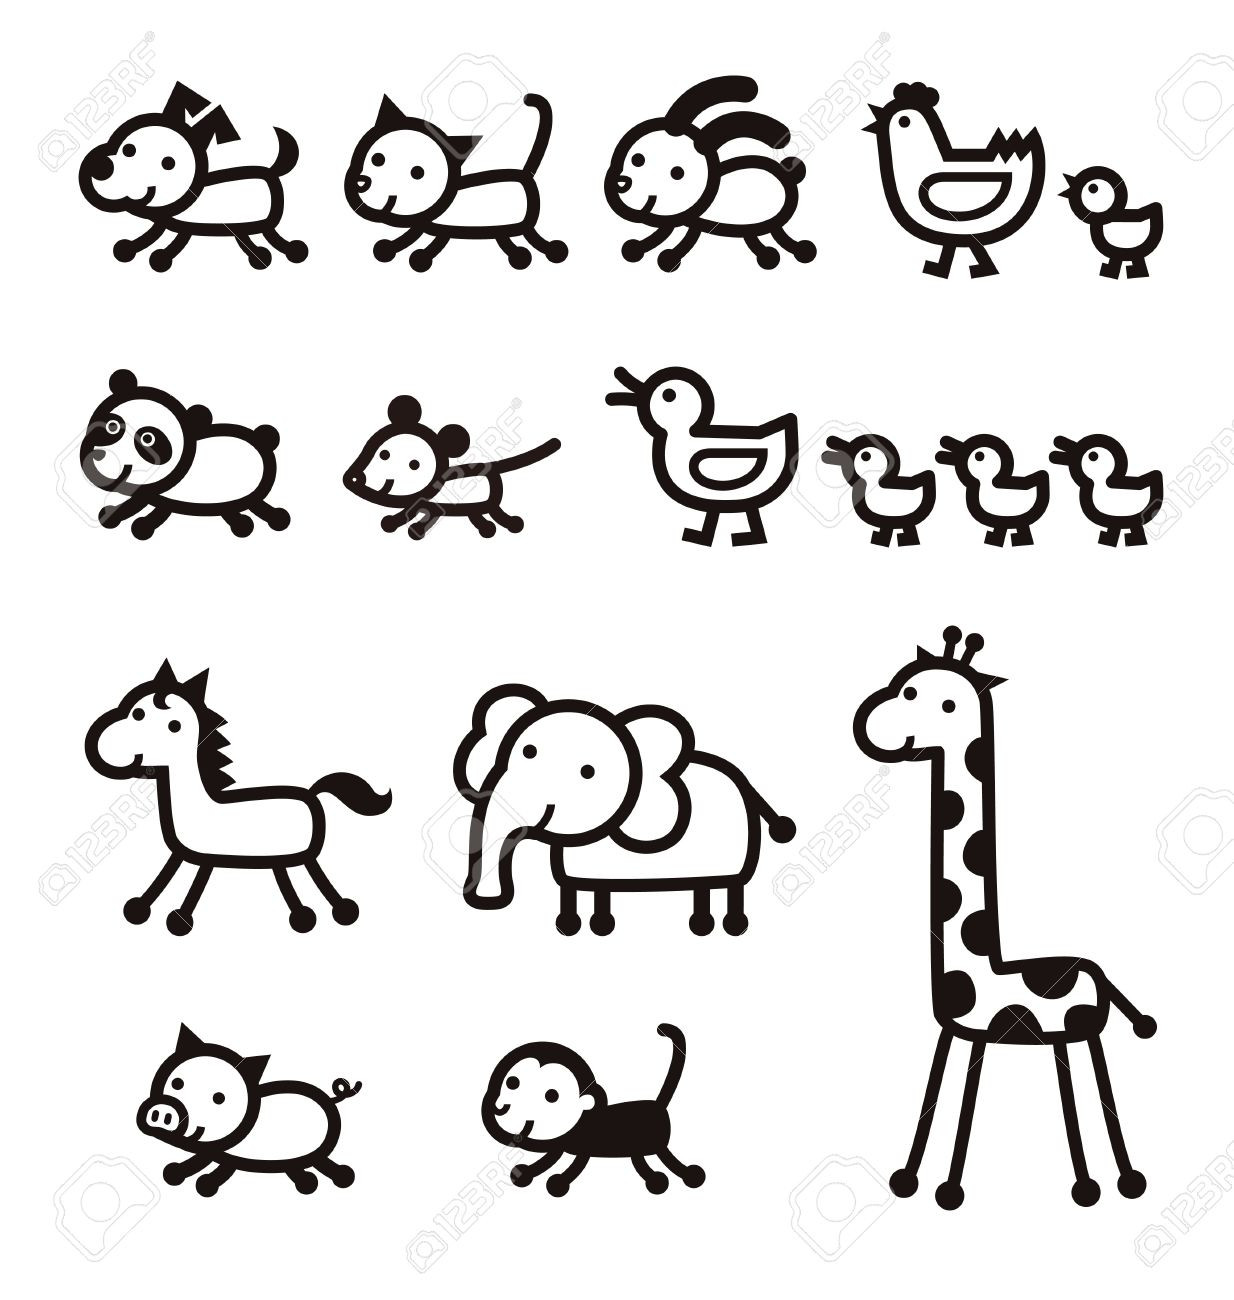 pet, live stock, zoo animal black and white icons.